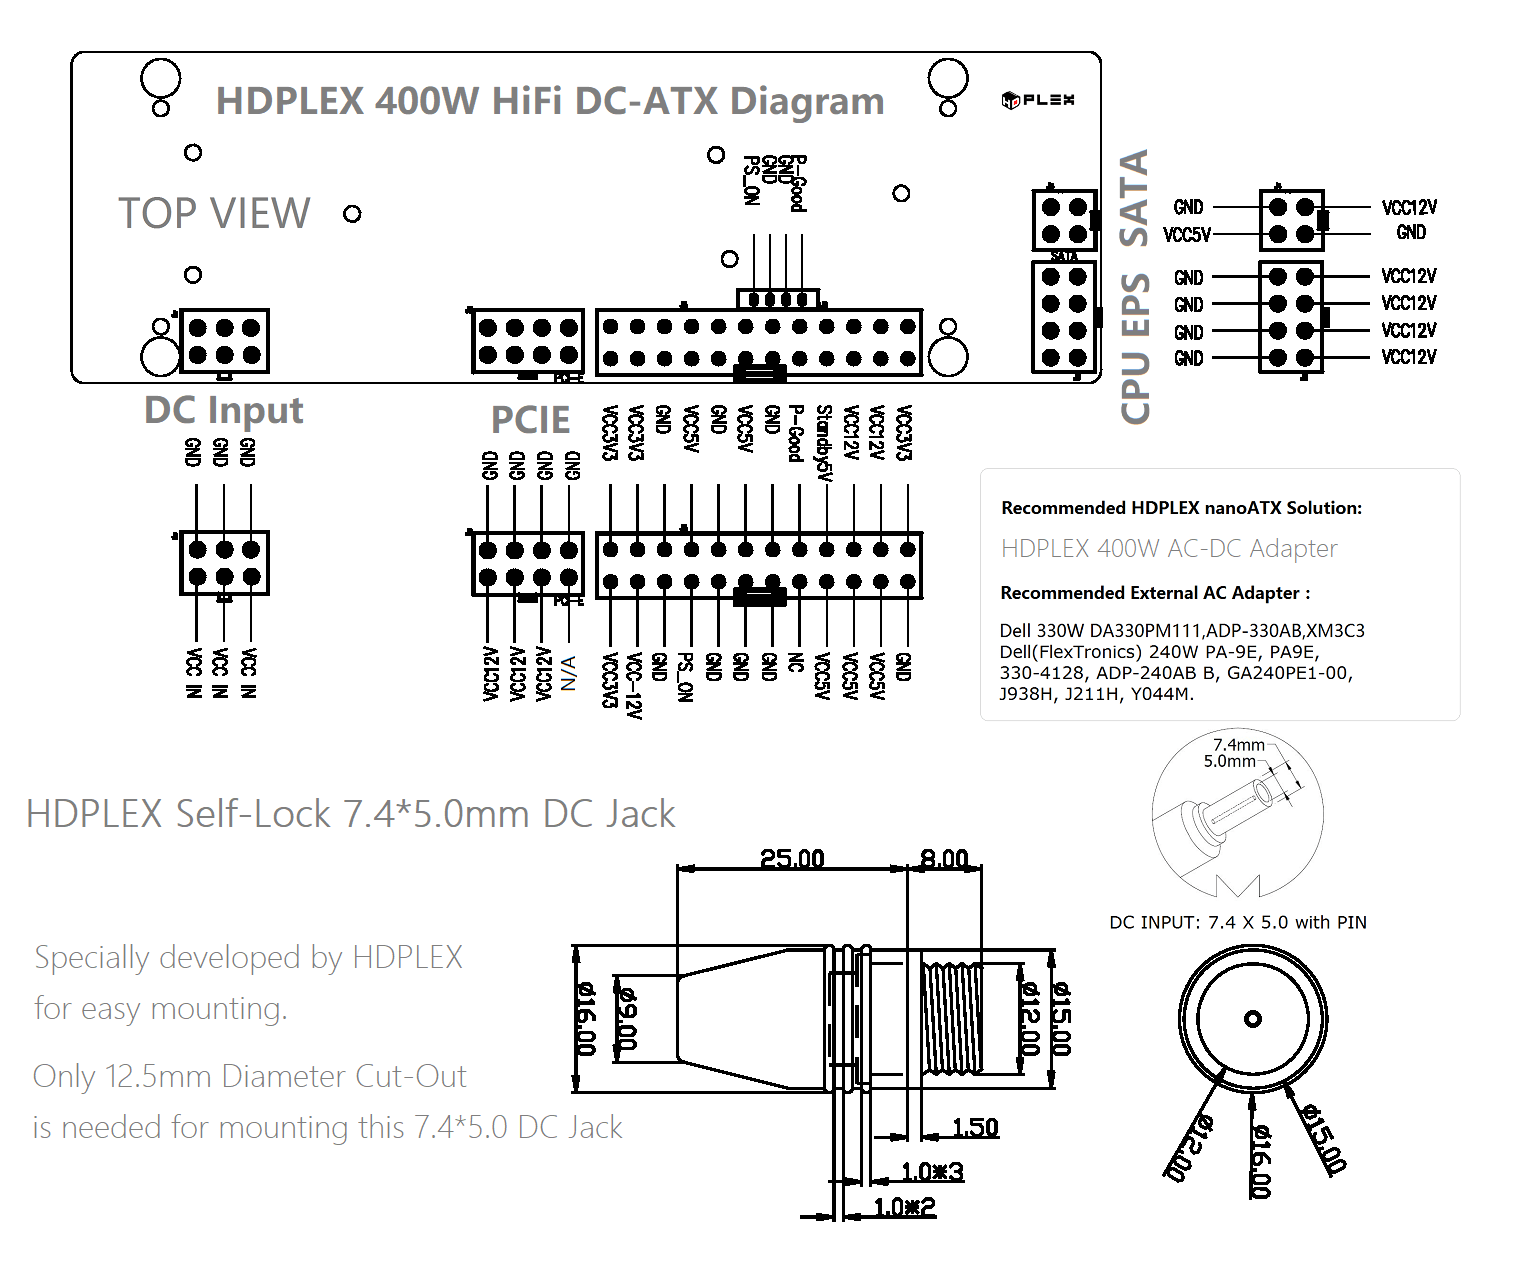 hight resolution of hdplex 300w hifi dc atx diagram discontinued